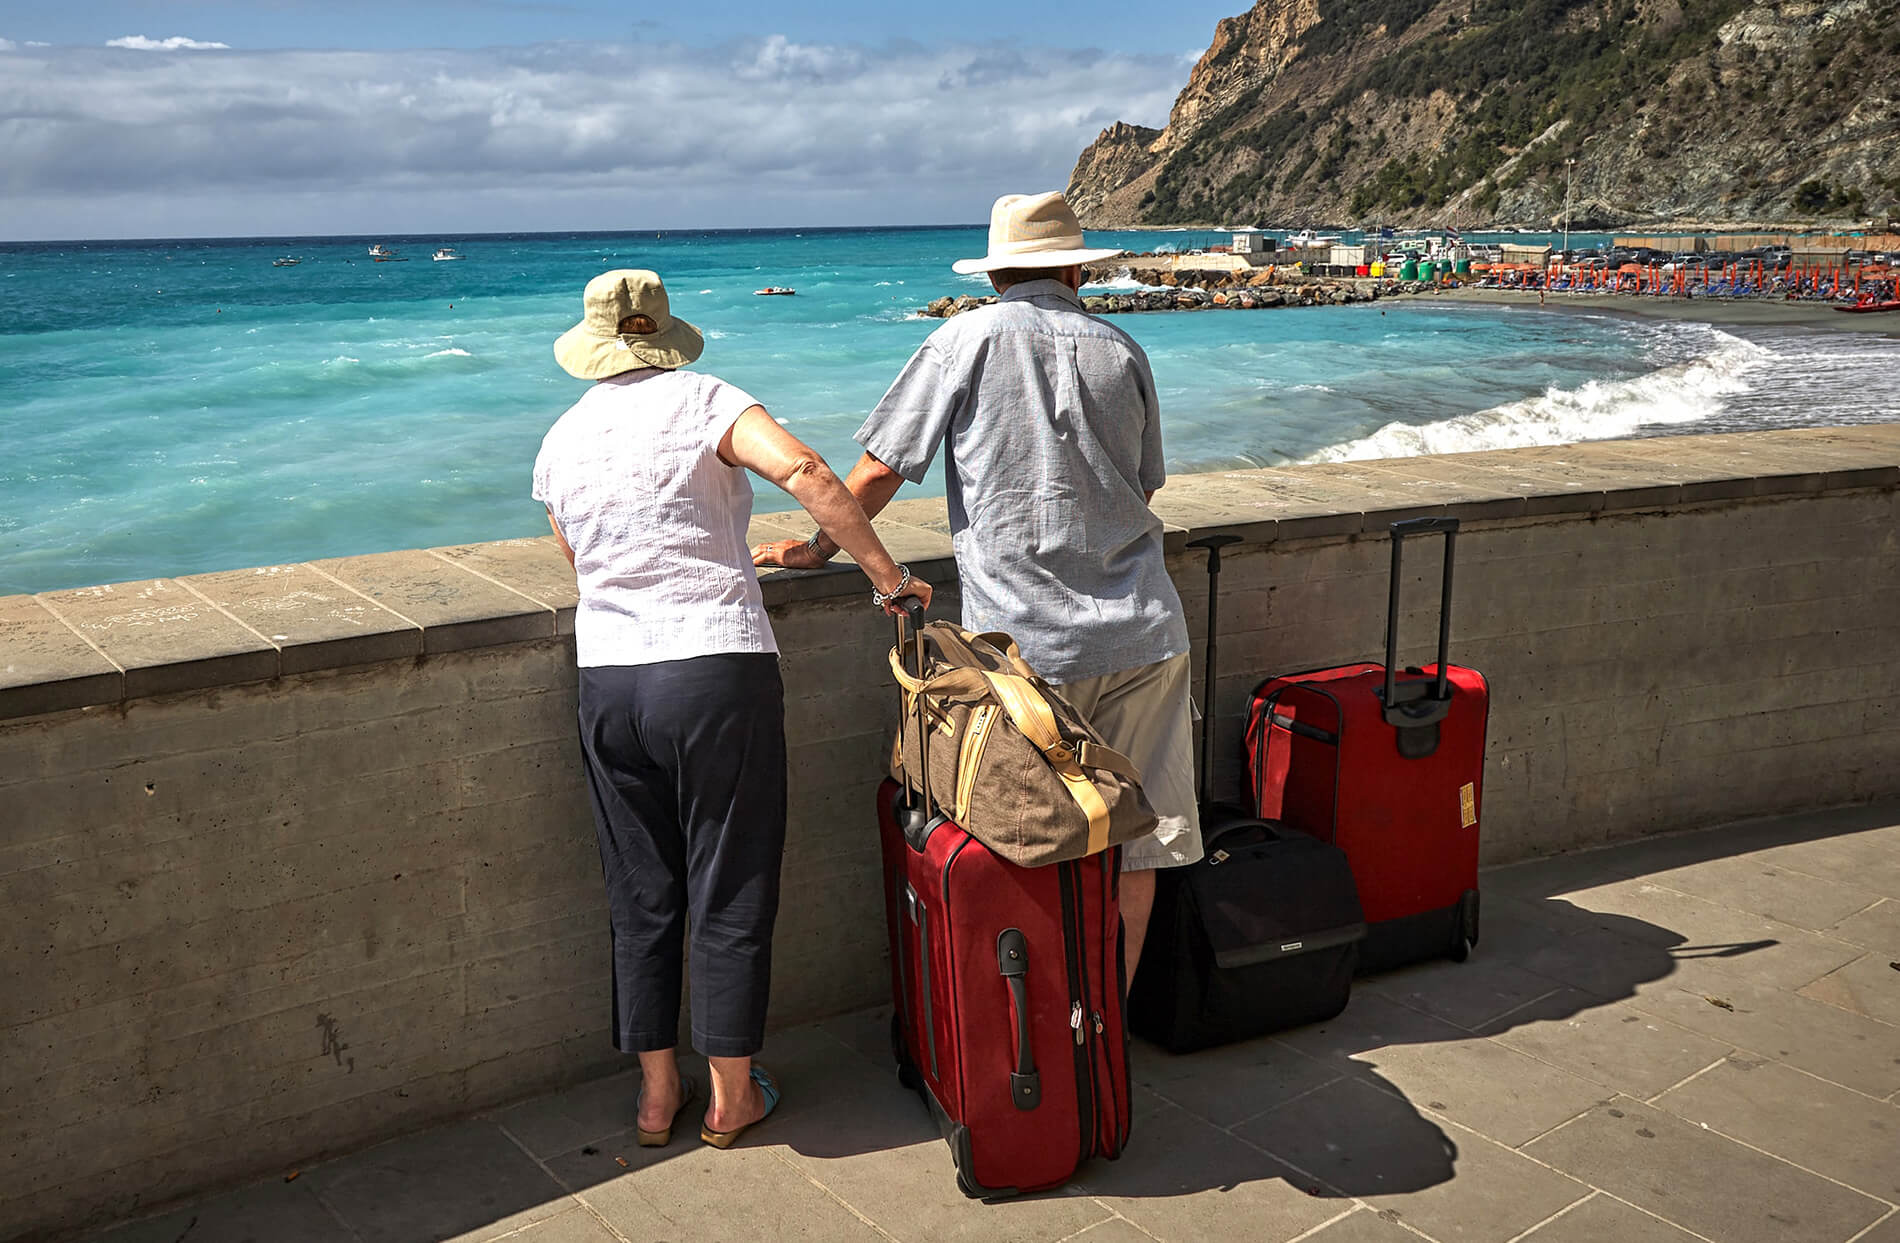 Retired couple traveling to the ocean